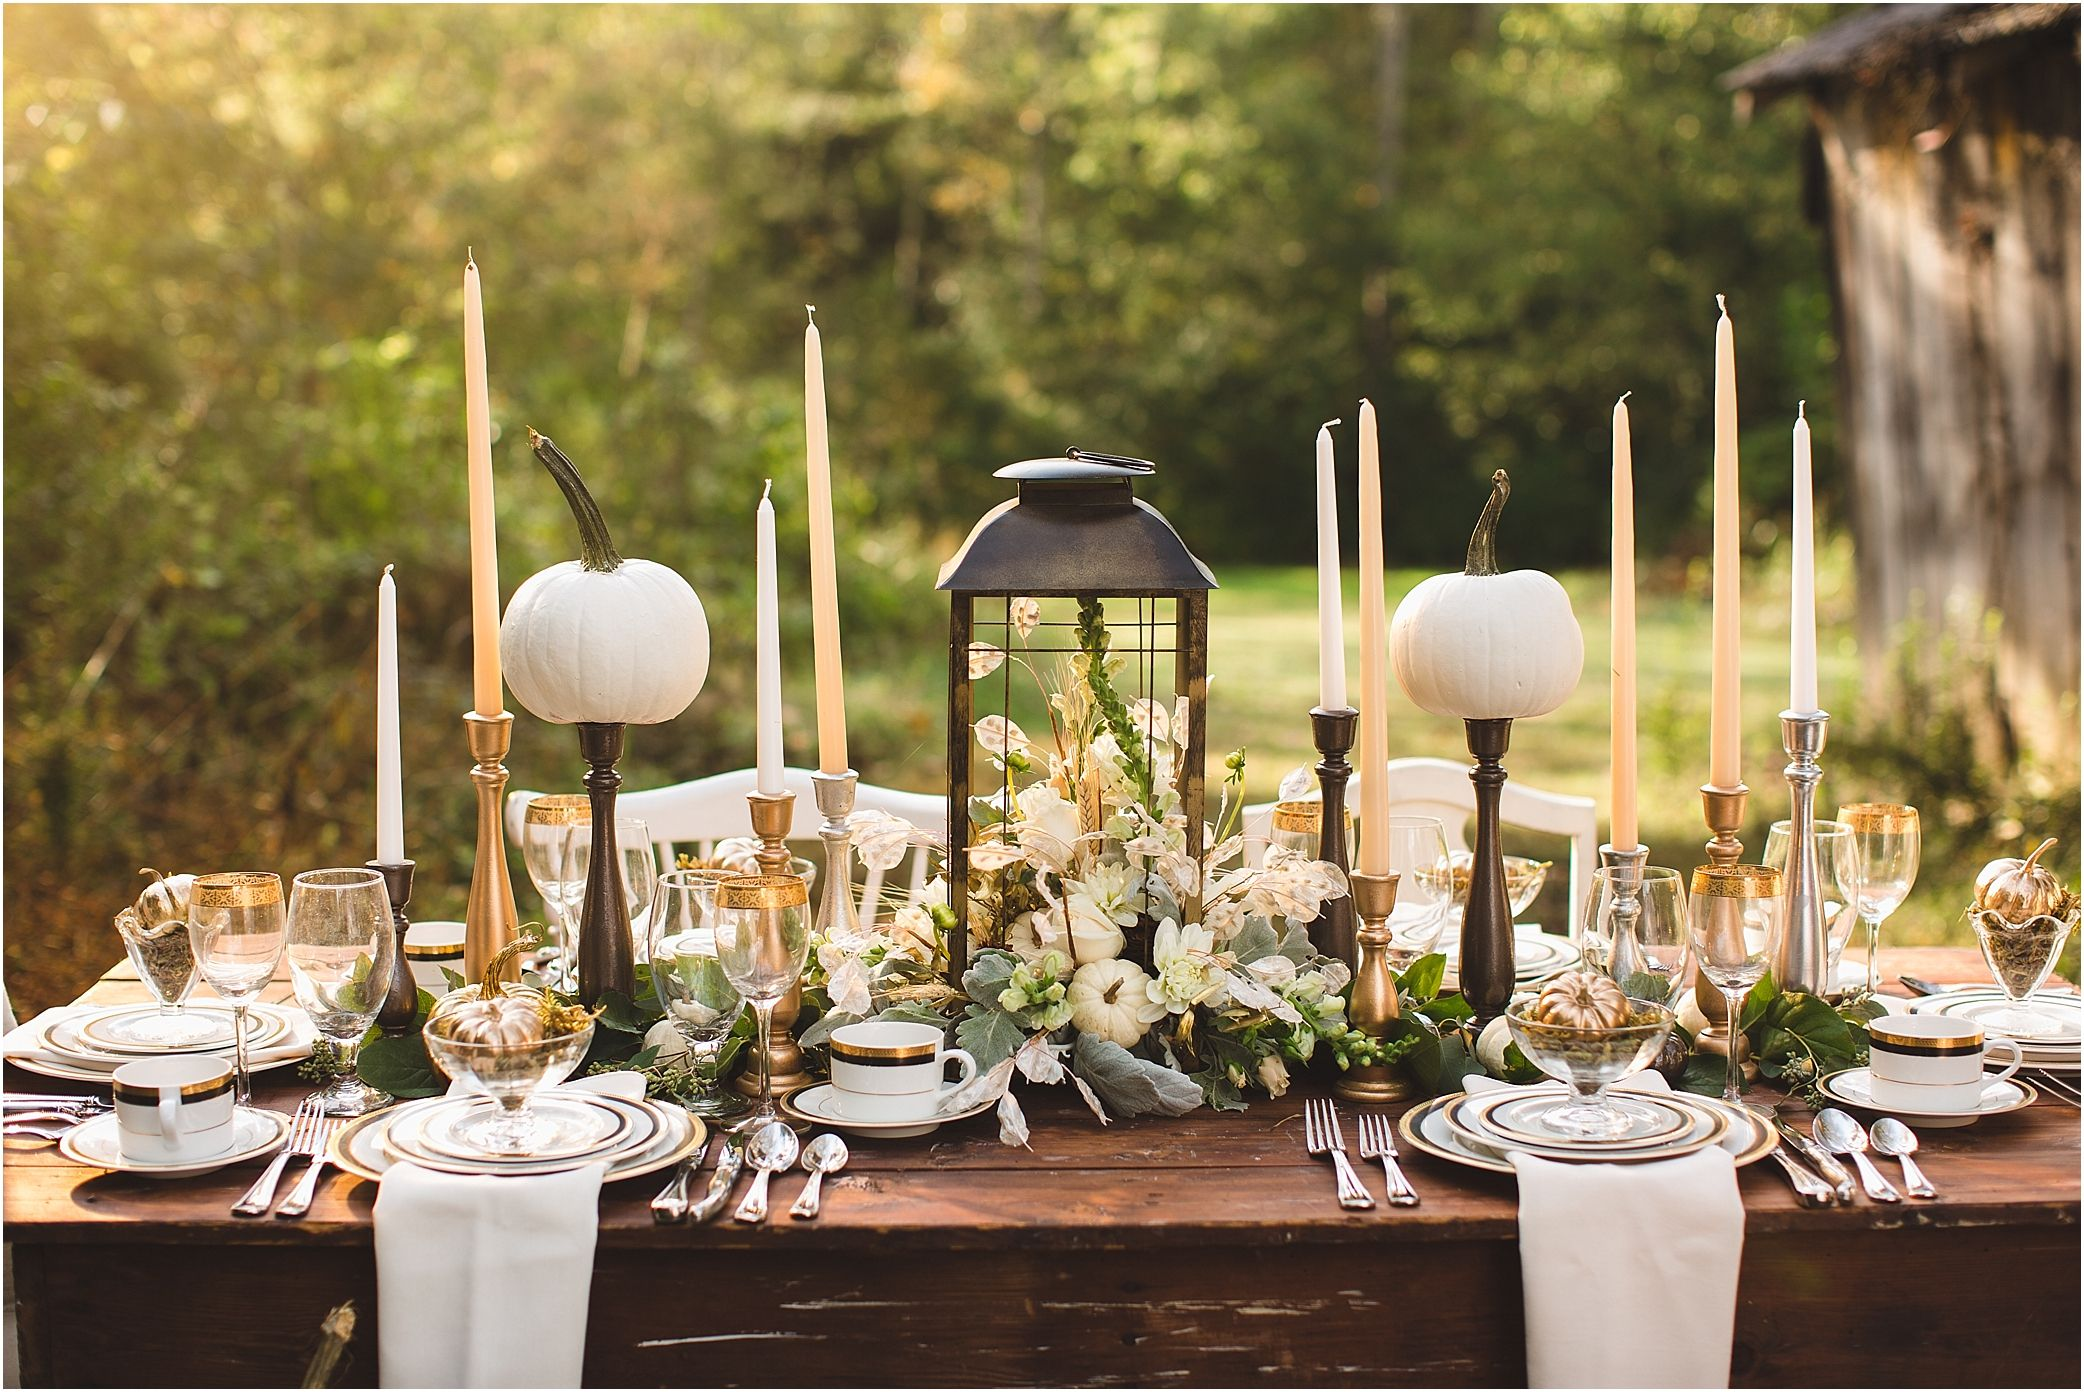 Beautiful fall Thanksgiving table with DIY decor and ideas - click to view more! & Beautiful fall Thanksgiving table with DIY decor and ideas - click ...